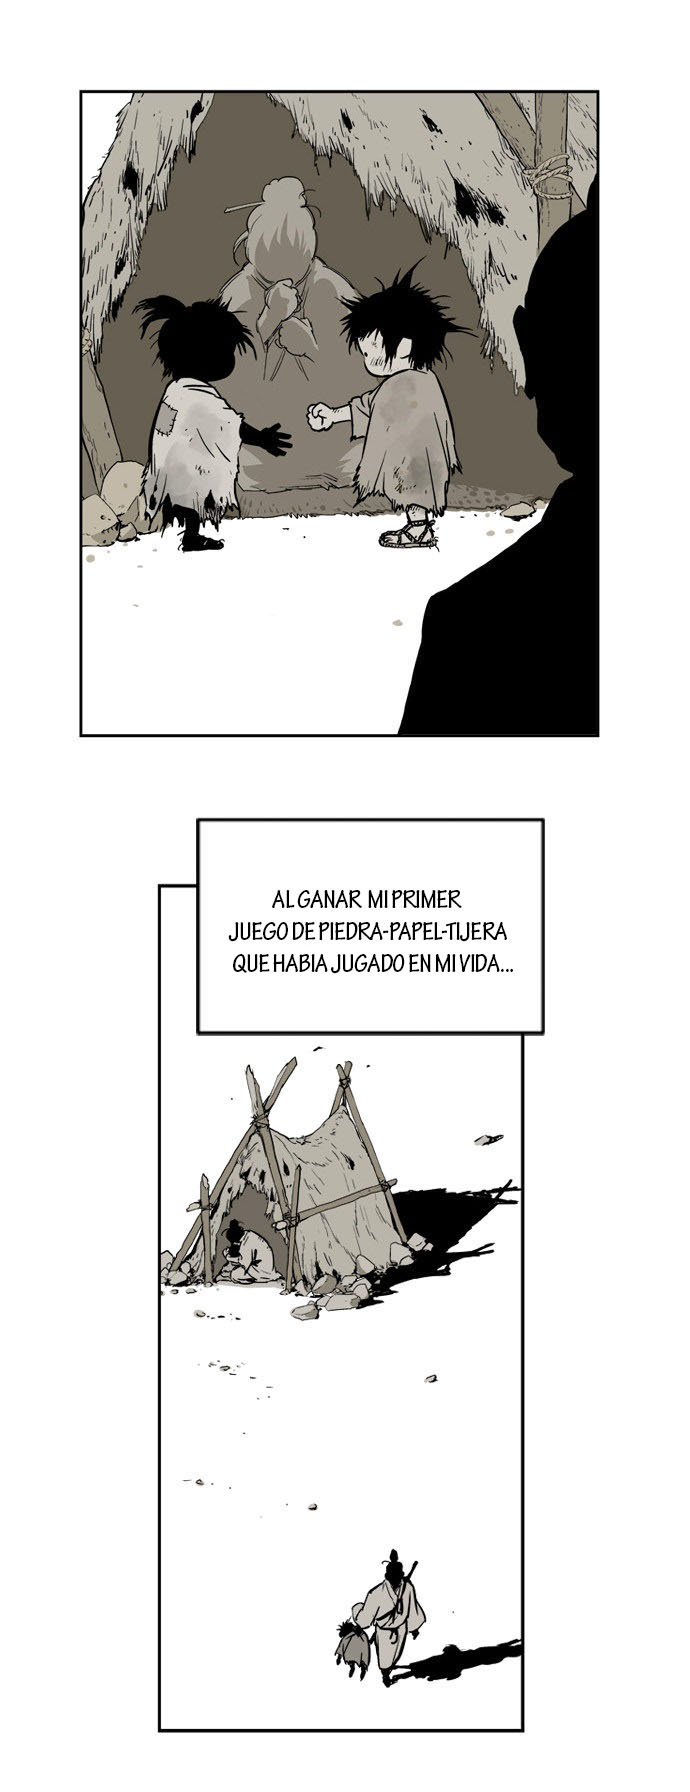 https://c5.ninemanga.com/es_manga/9/18249/432440/030de59e1f13a523193f95500bb980a5.jpg Page 3